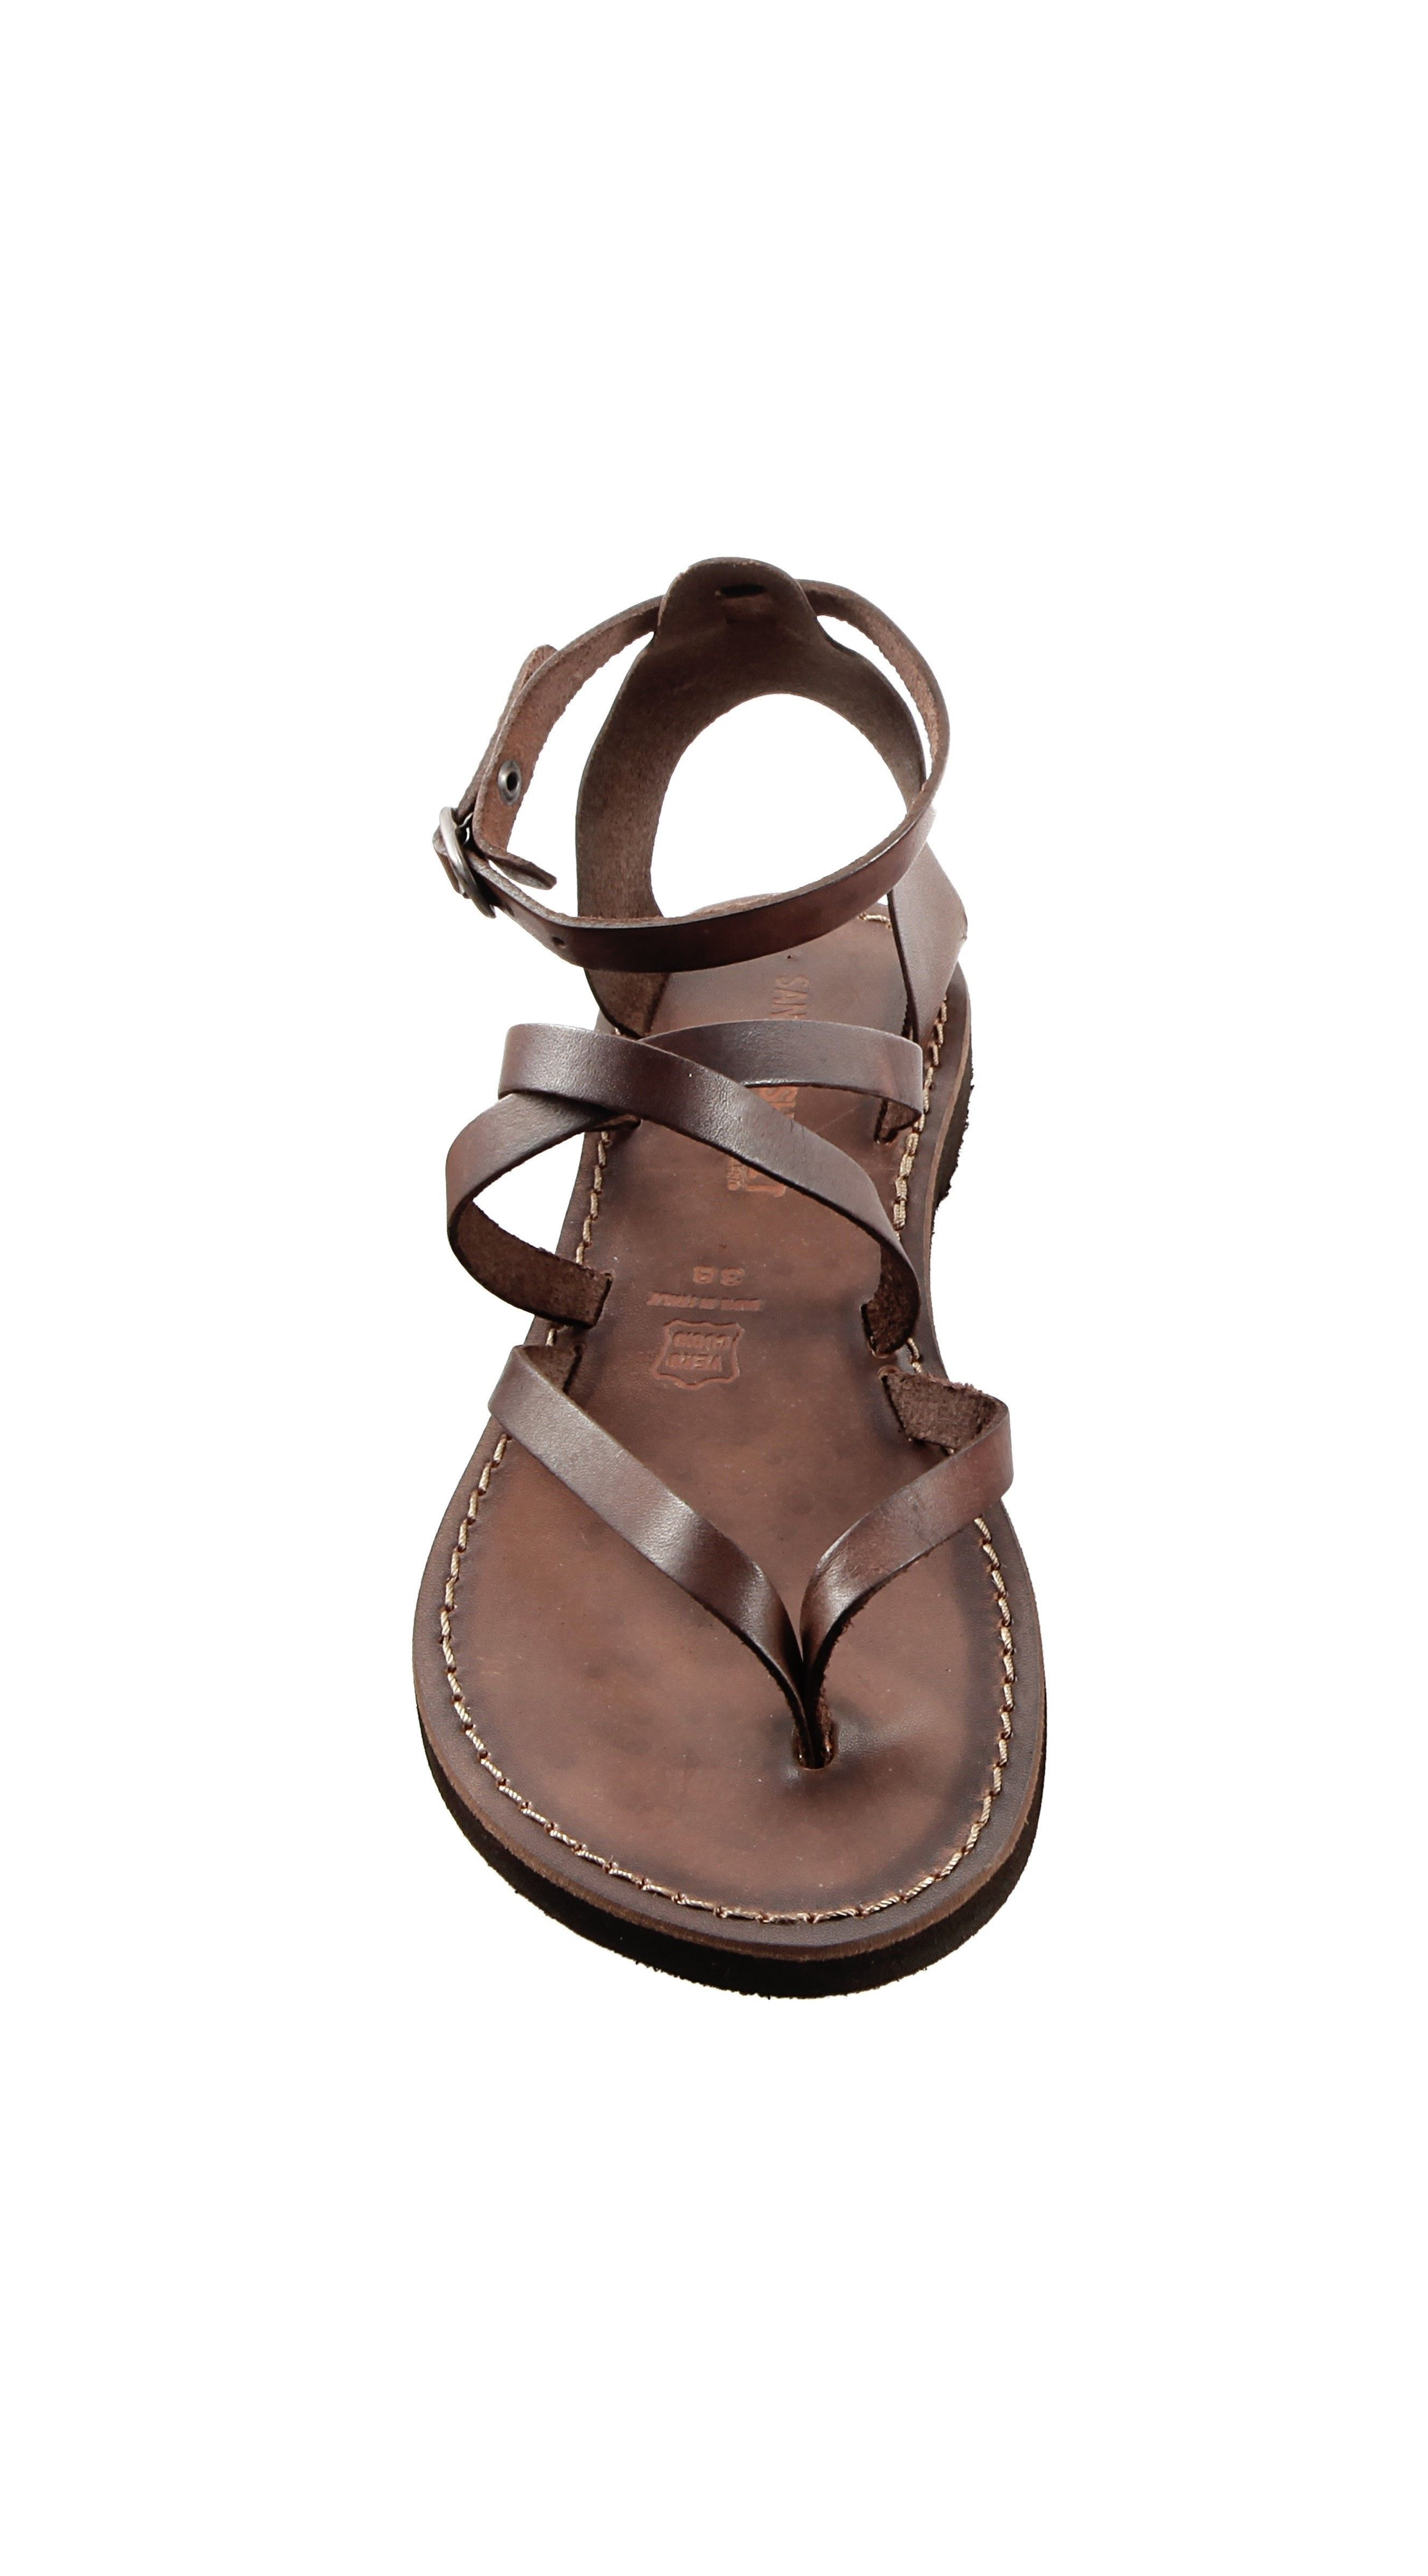 Fashion Cheap Amazon Sandals Slippers Sports shoes Online